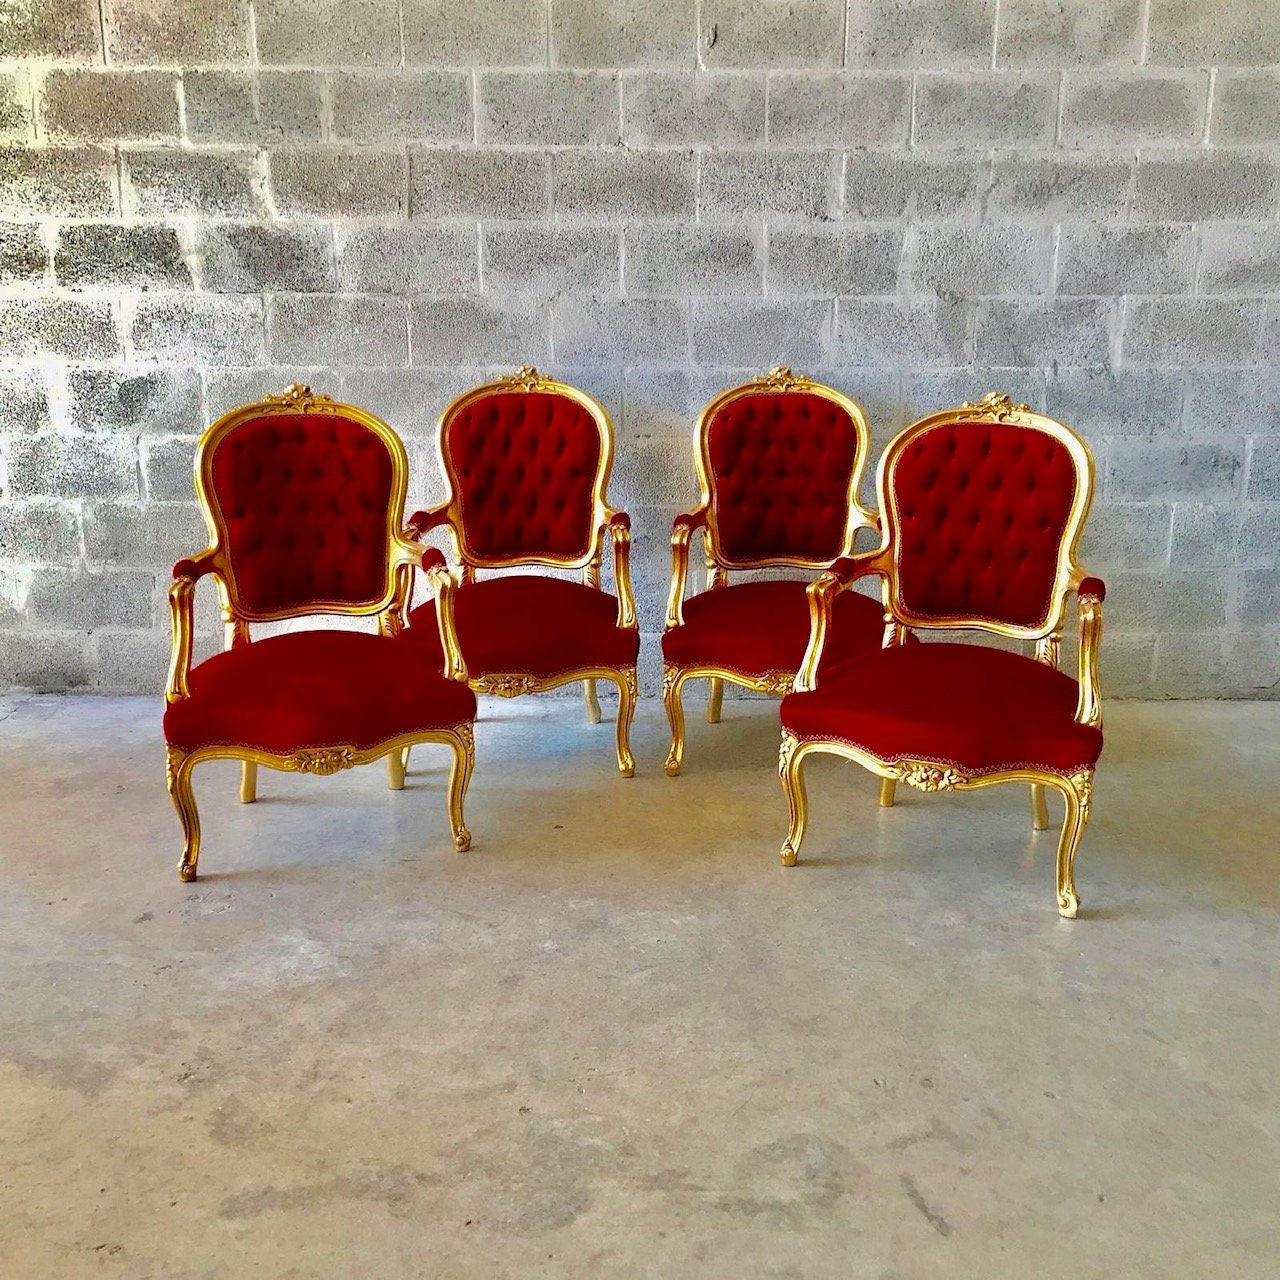 Magnificent Sold French Chair Red French Settee 5 Piece Availa Machost Co Dining Chair Design Ideas Machostcouk